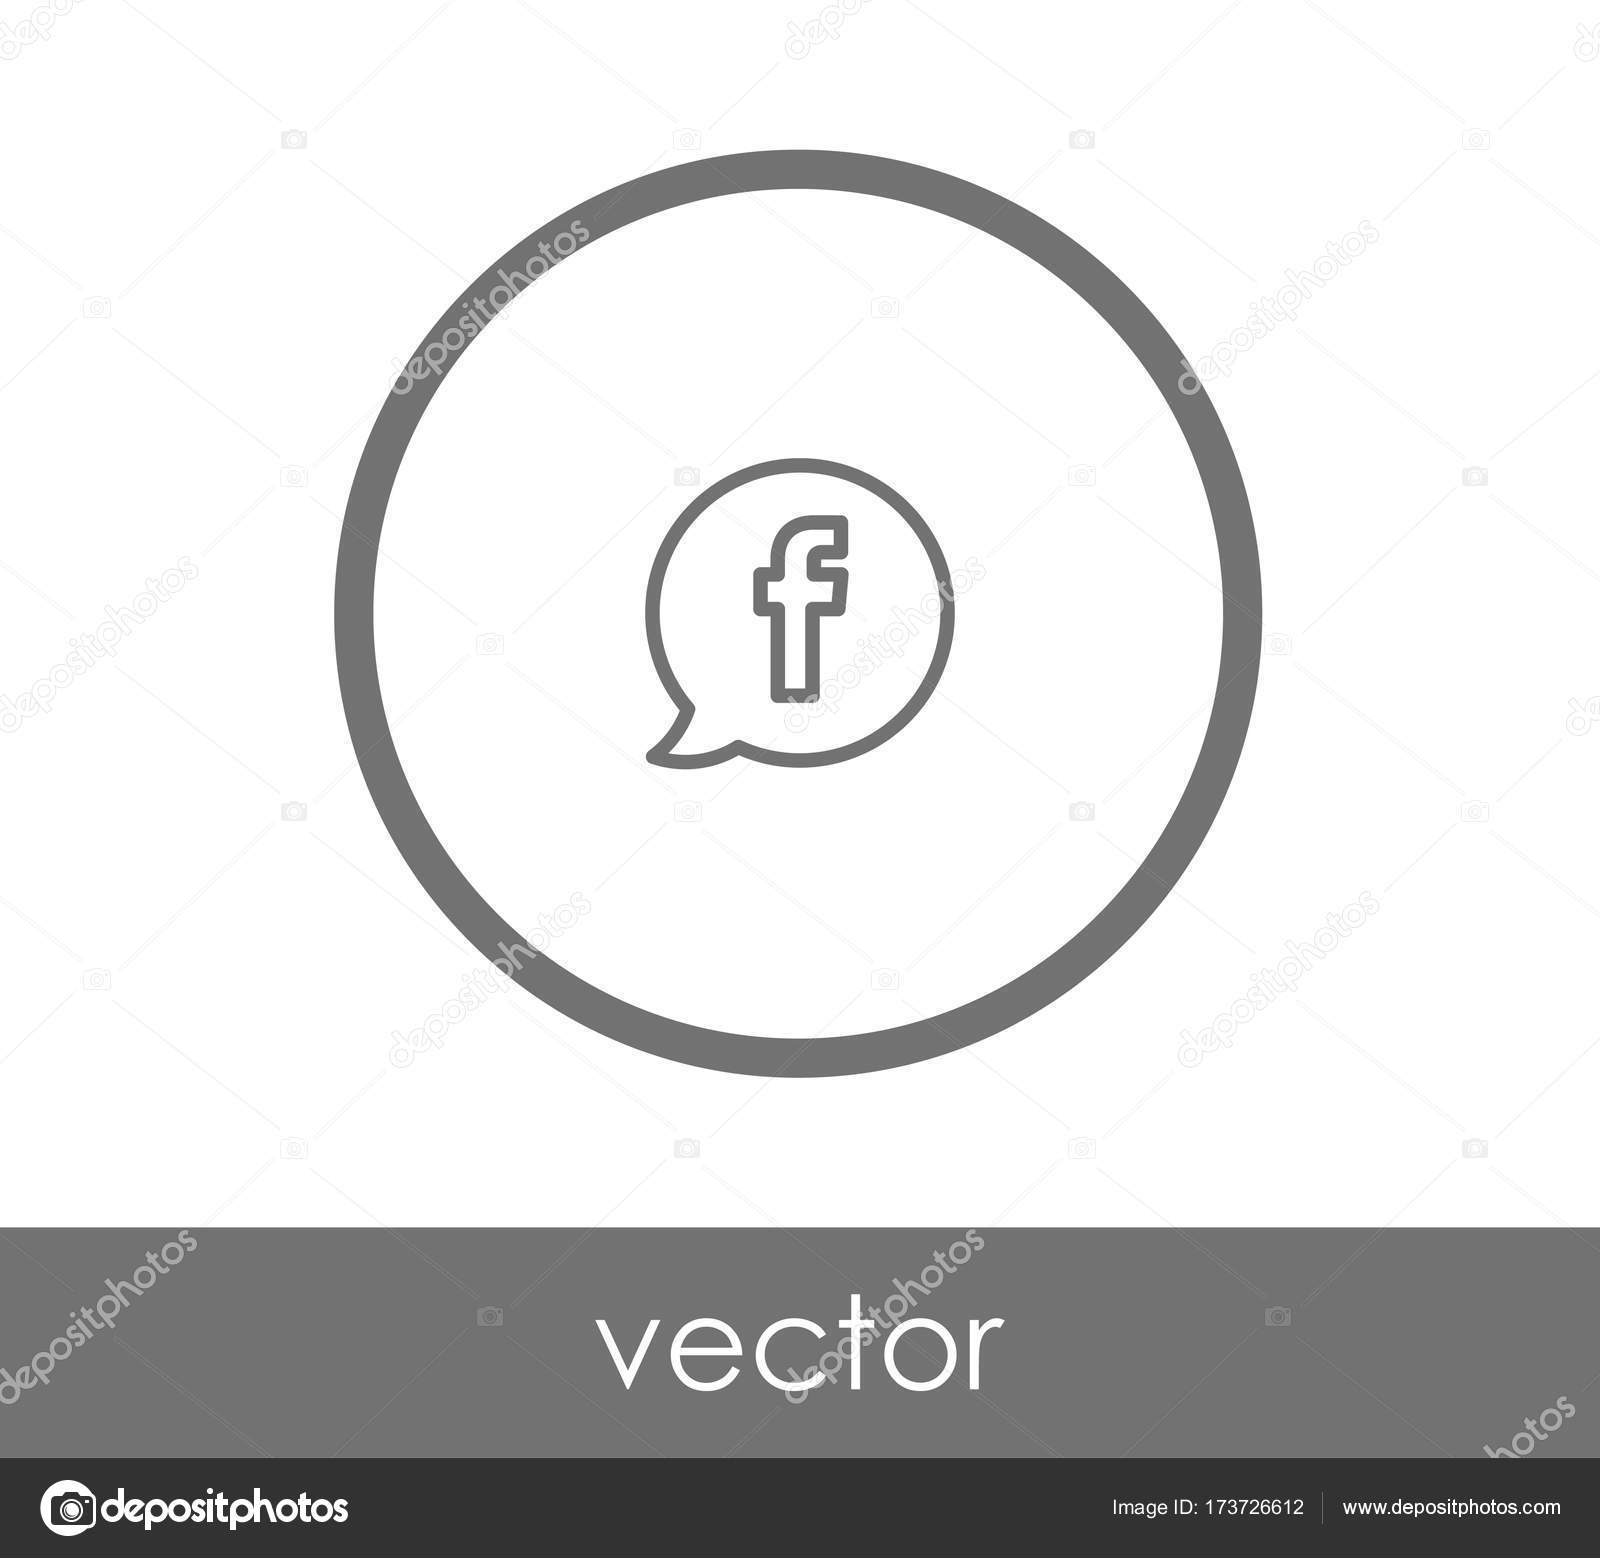 facebook logo icon — Stock Vector © signsandsymbols@email com #173726612